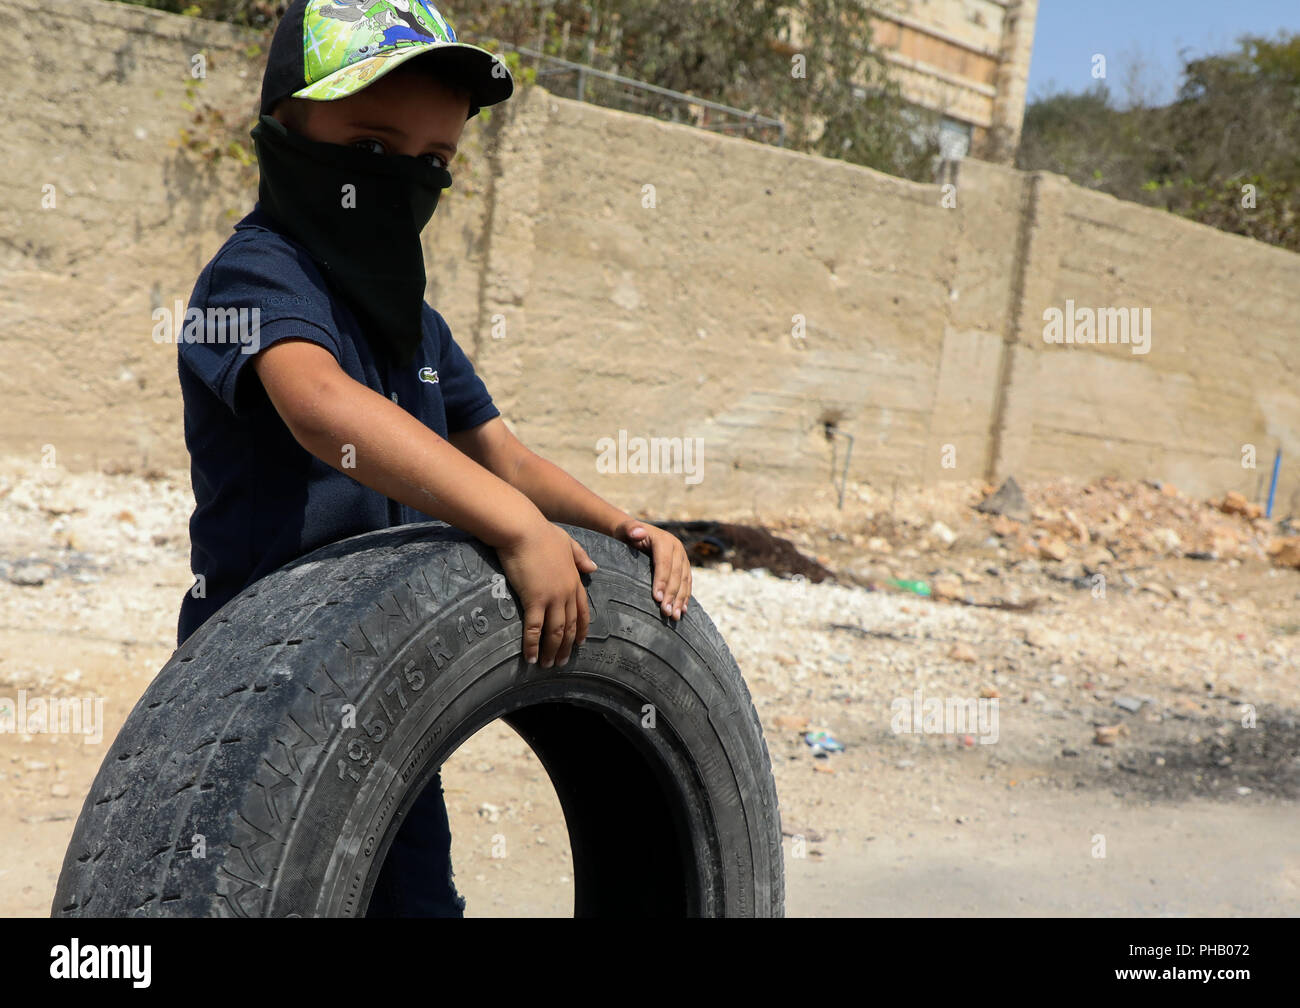 August 31, 2018 - Palestinian children and teenagers clash with the Israeli Security Forces during a weekly protest in the West Bank town of Kafr Qaddum against the confiscation of land and the closure of the town's main road. The issue of Israel constantly seizing land to build or extend Israeli settlements in the West Bank is a major stumbling block in the achievement of a peace settlement between the Palestinians and the Israelis. The residents of Kafr Qaddum have been holding weekly demonstrations since 2011 in protest against the extension of the nearby Israeli settlement of Kadumin, t - Stock Image